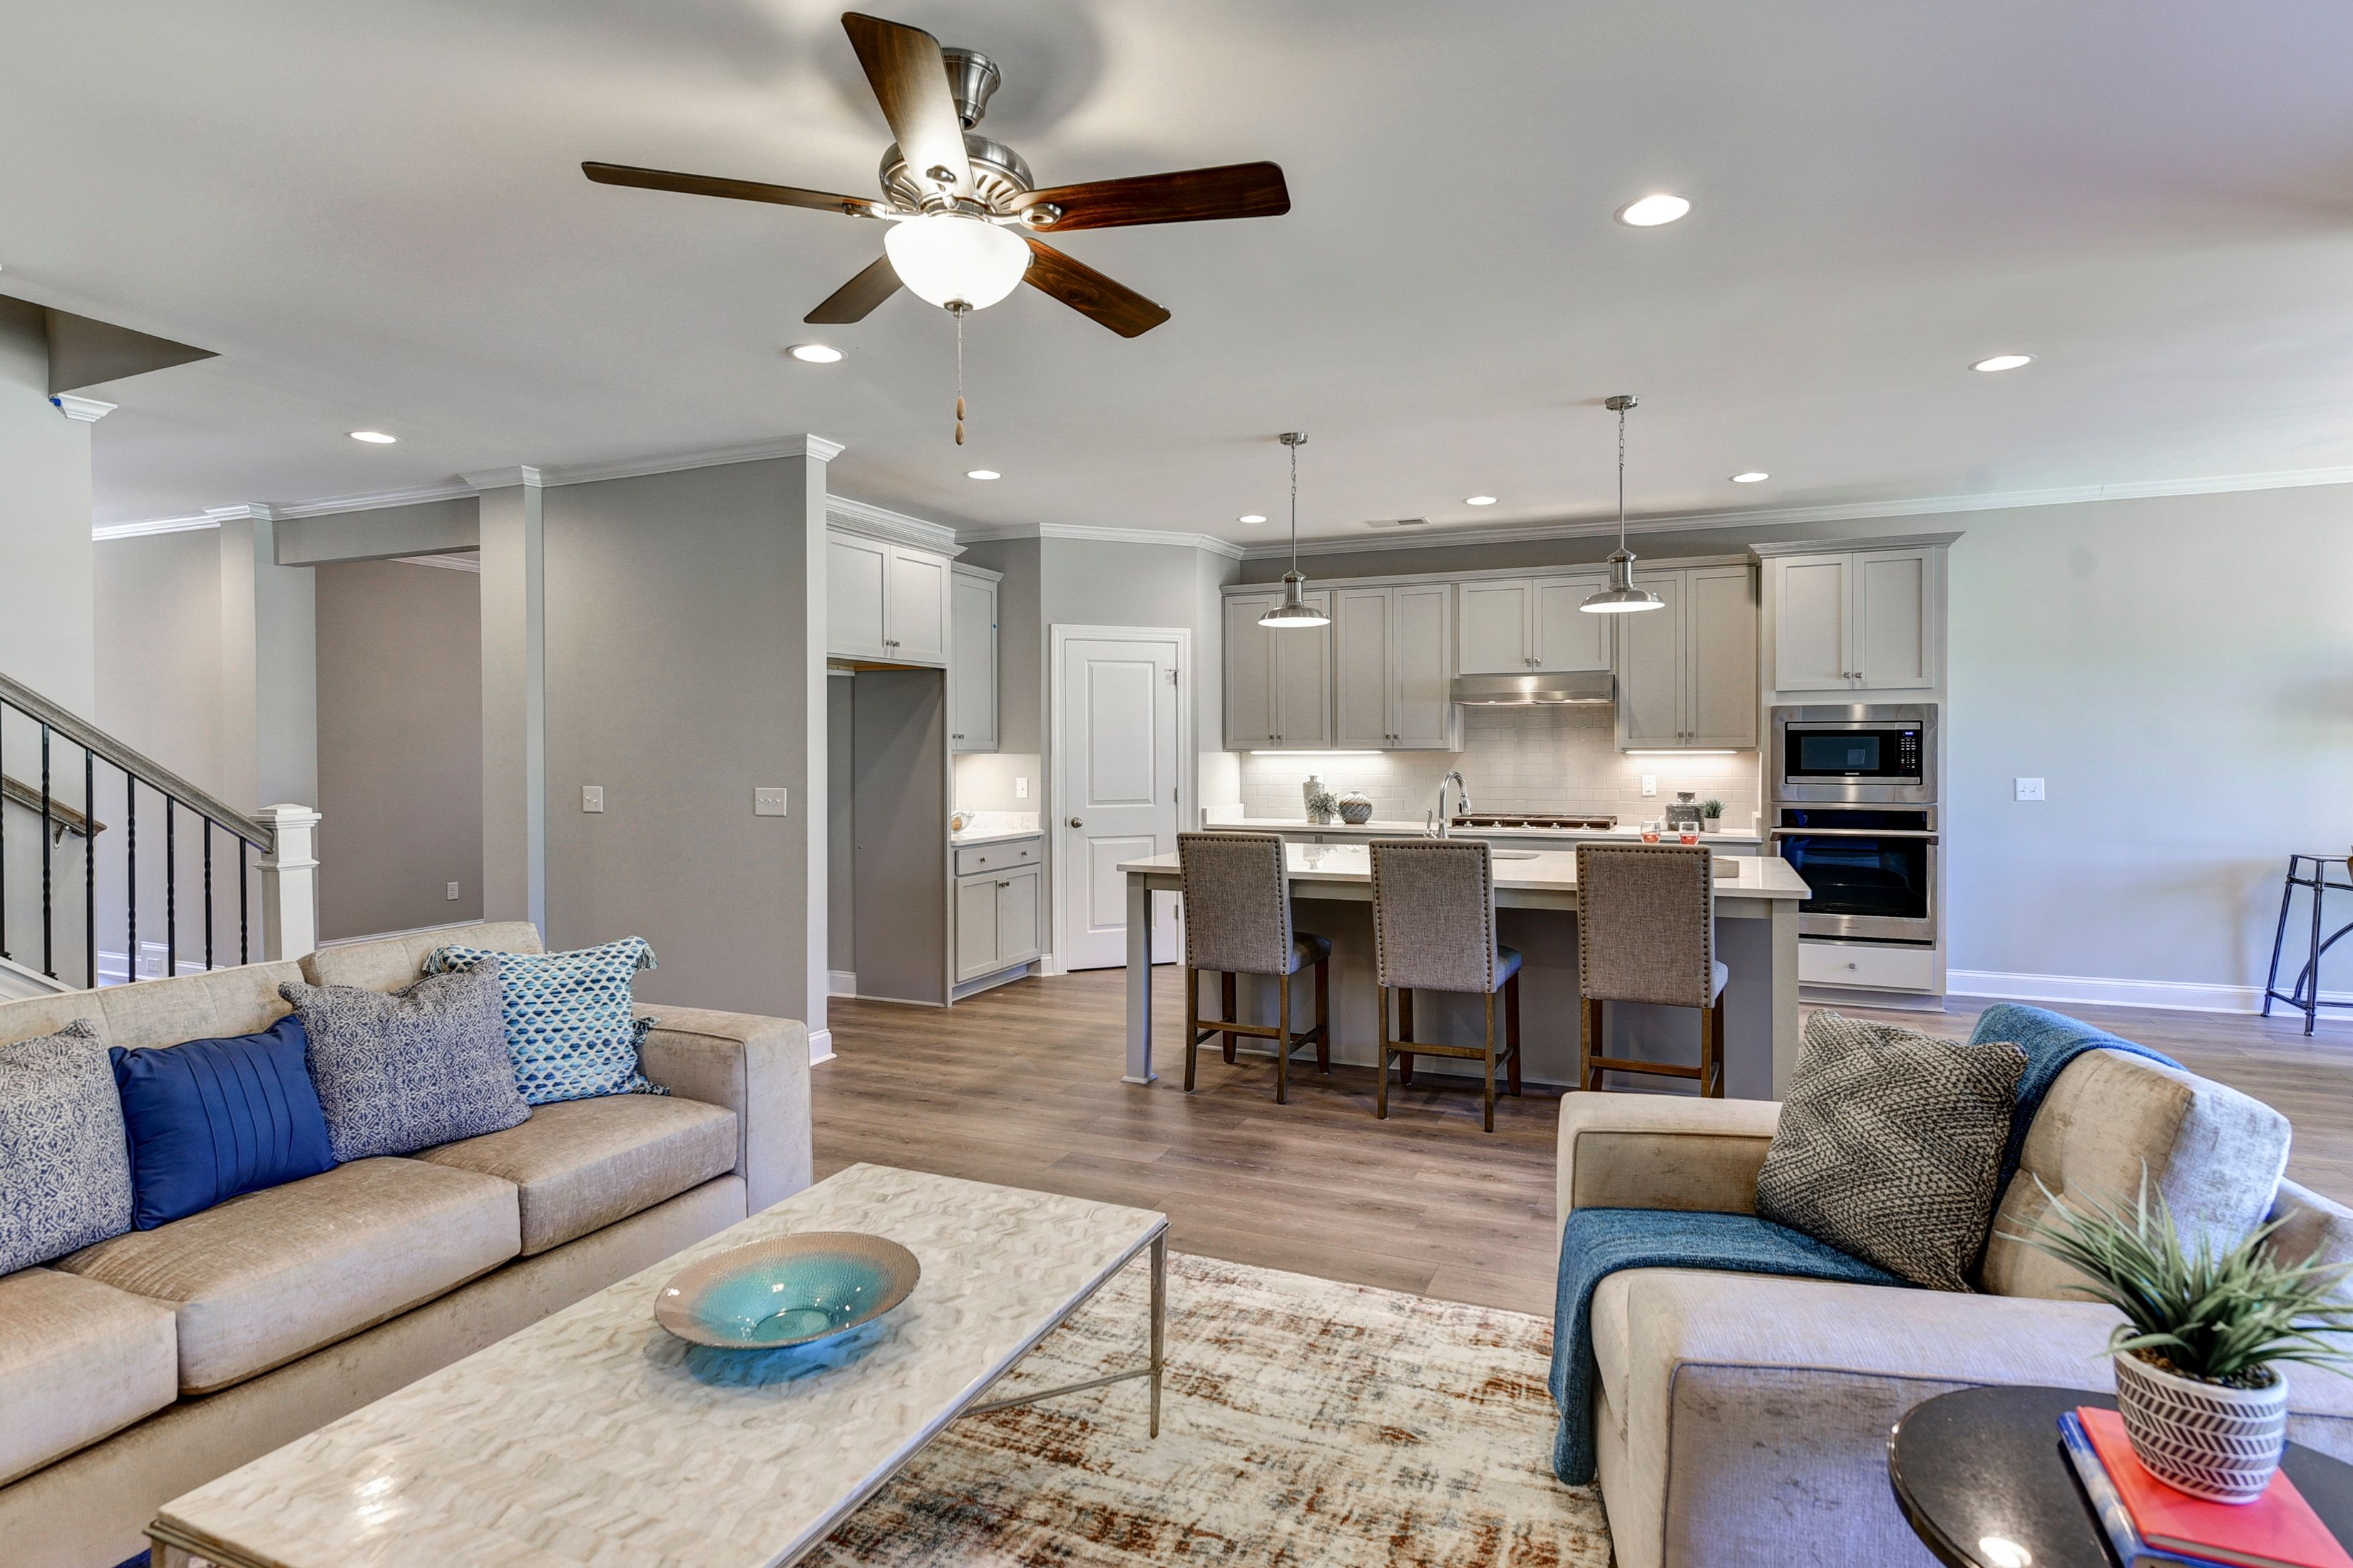 Living Area featured in the Litchfield- NWV By Executive Construction Homes in Columbia, SC